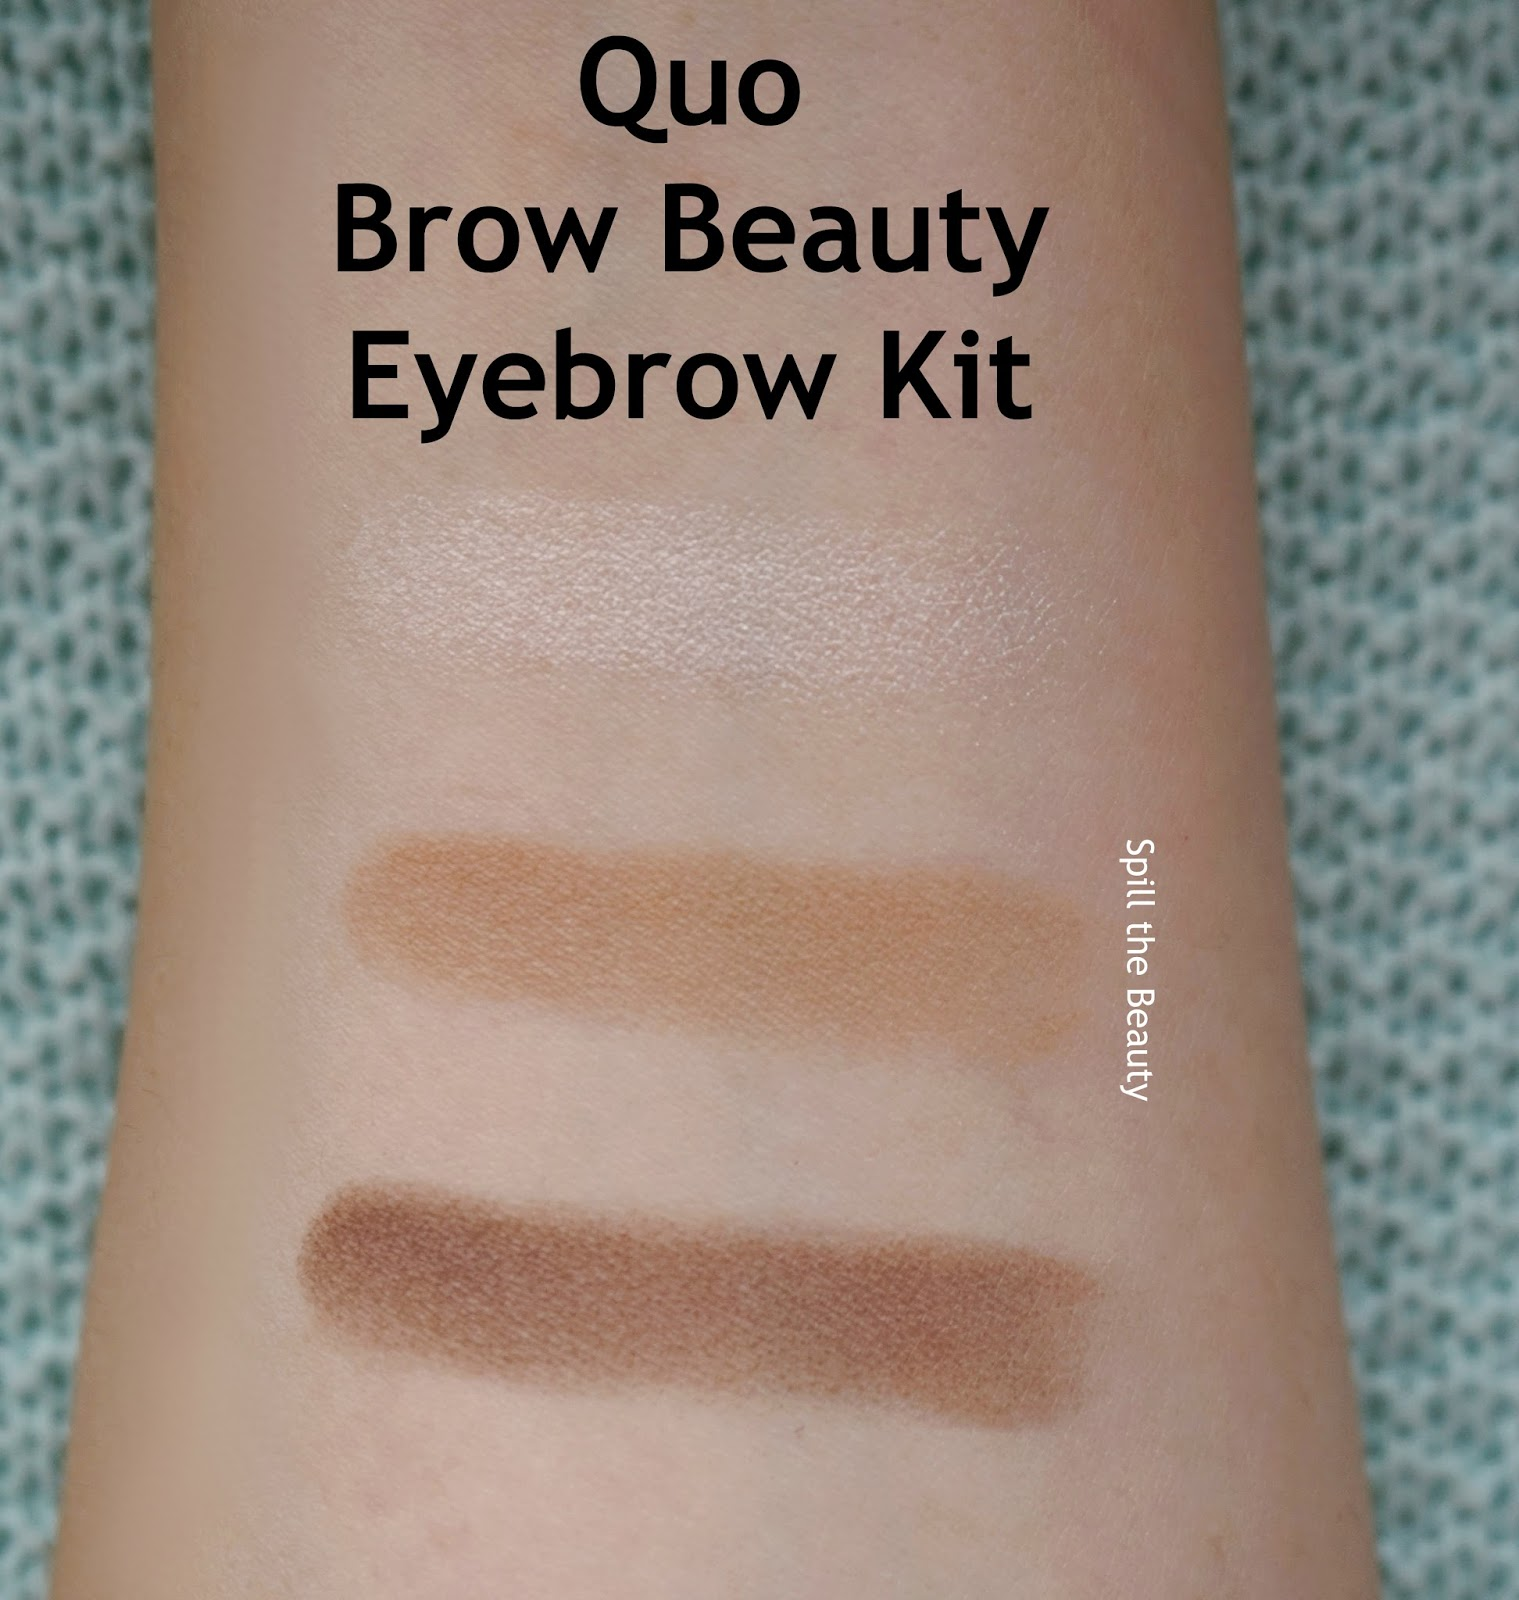 quo brow beauty eyebrow kit holiday 2016 review swatches before and after